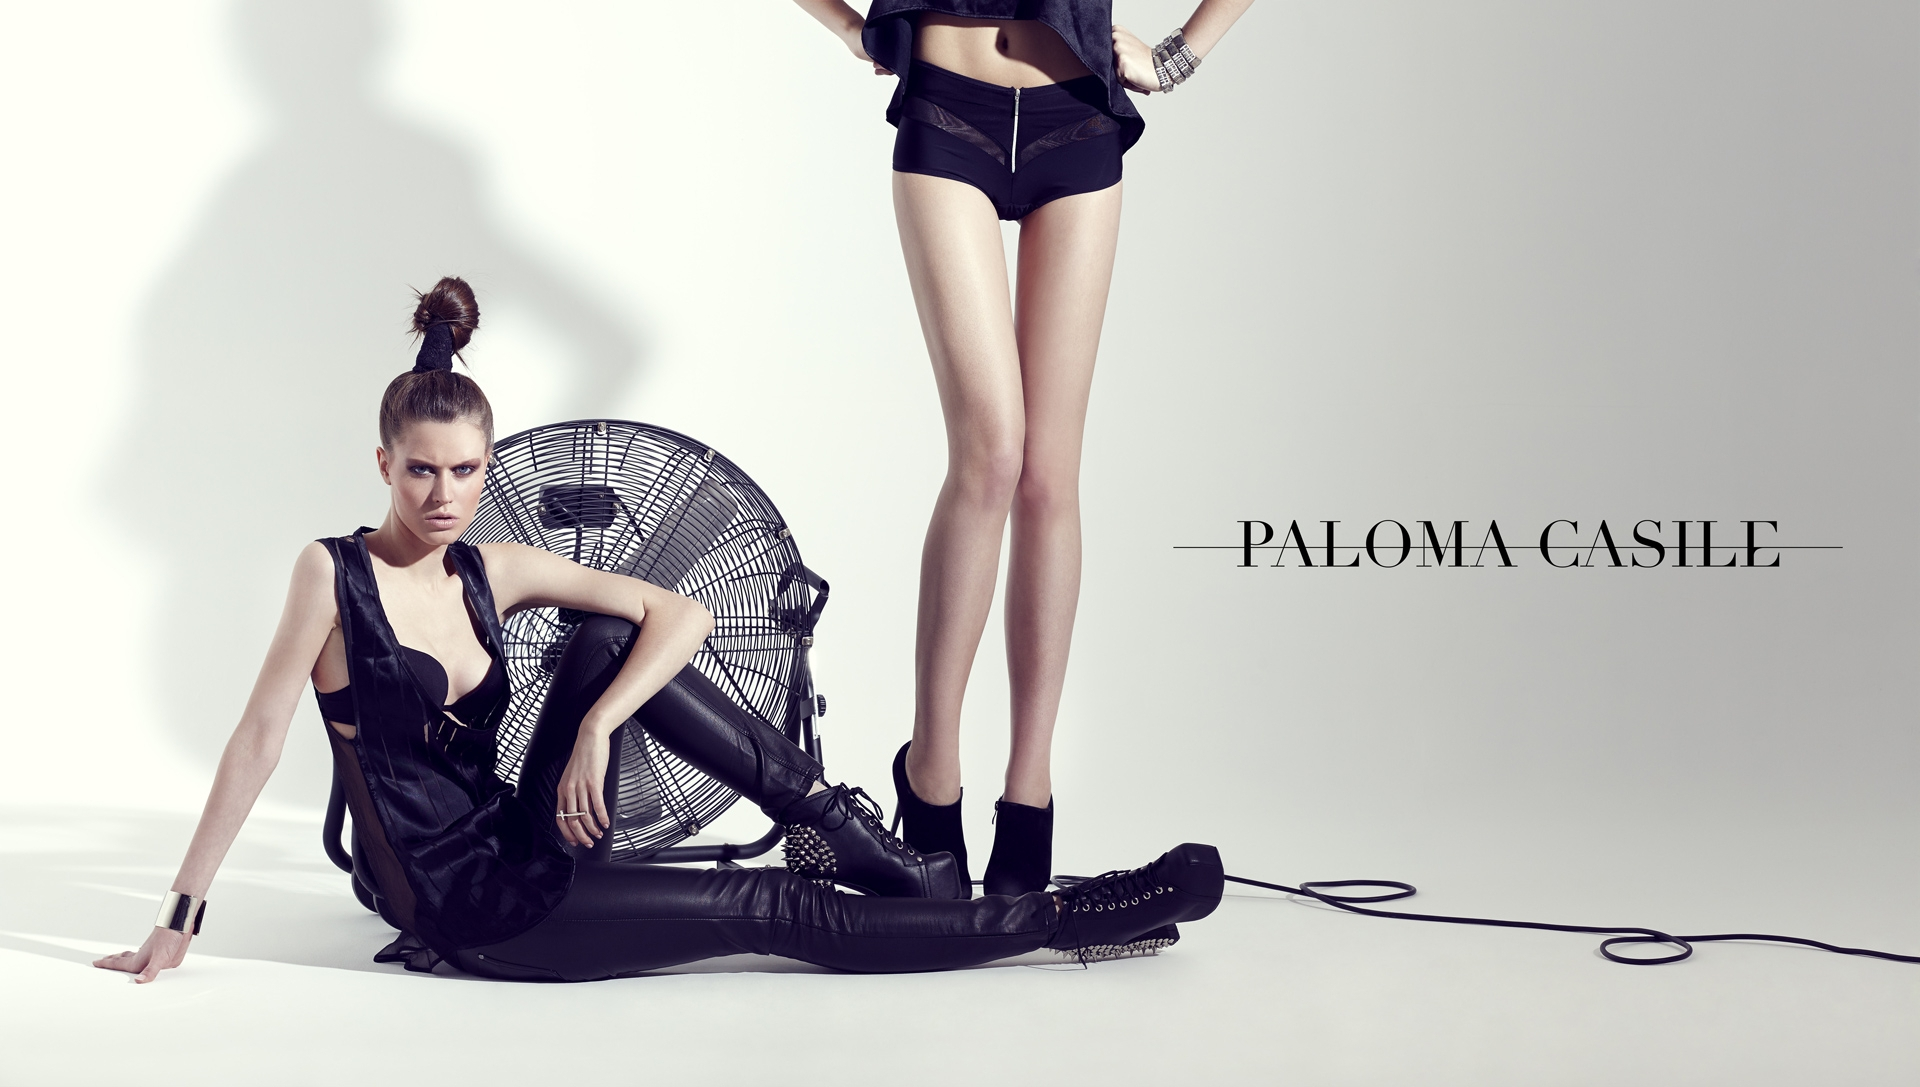 paloma casile editorial lingerie frederic mercier fashion photographer one color